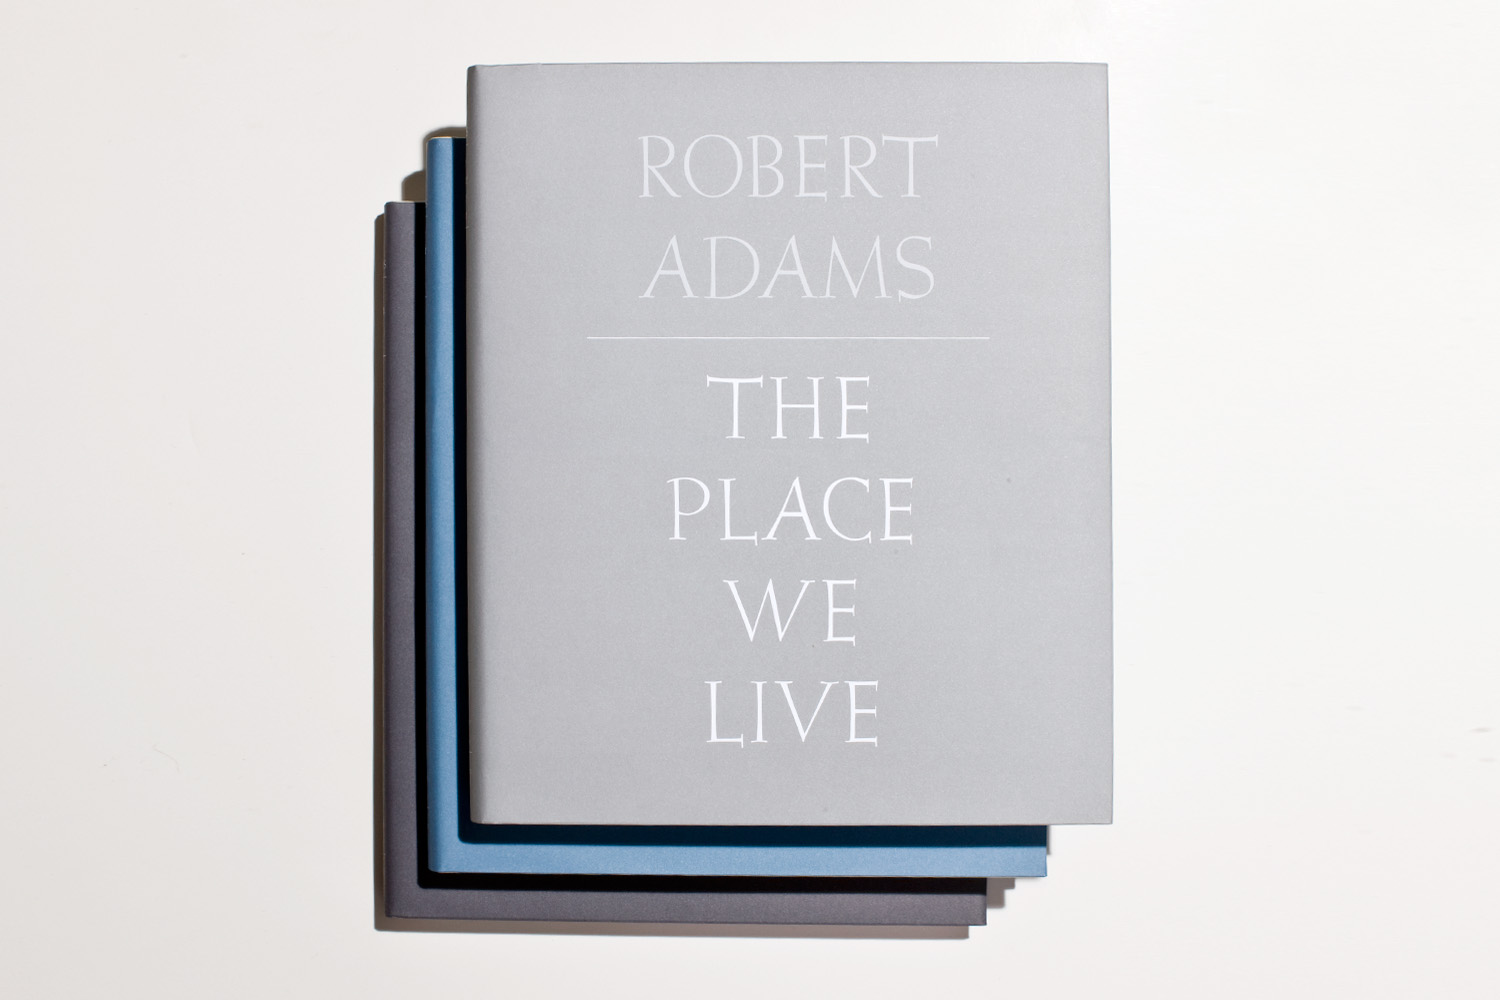 The Place We Live by Robert Adams, selected by Michael Mack, publisher of MACK